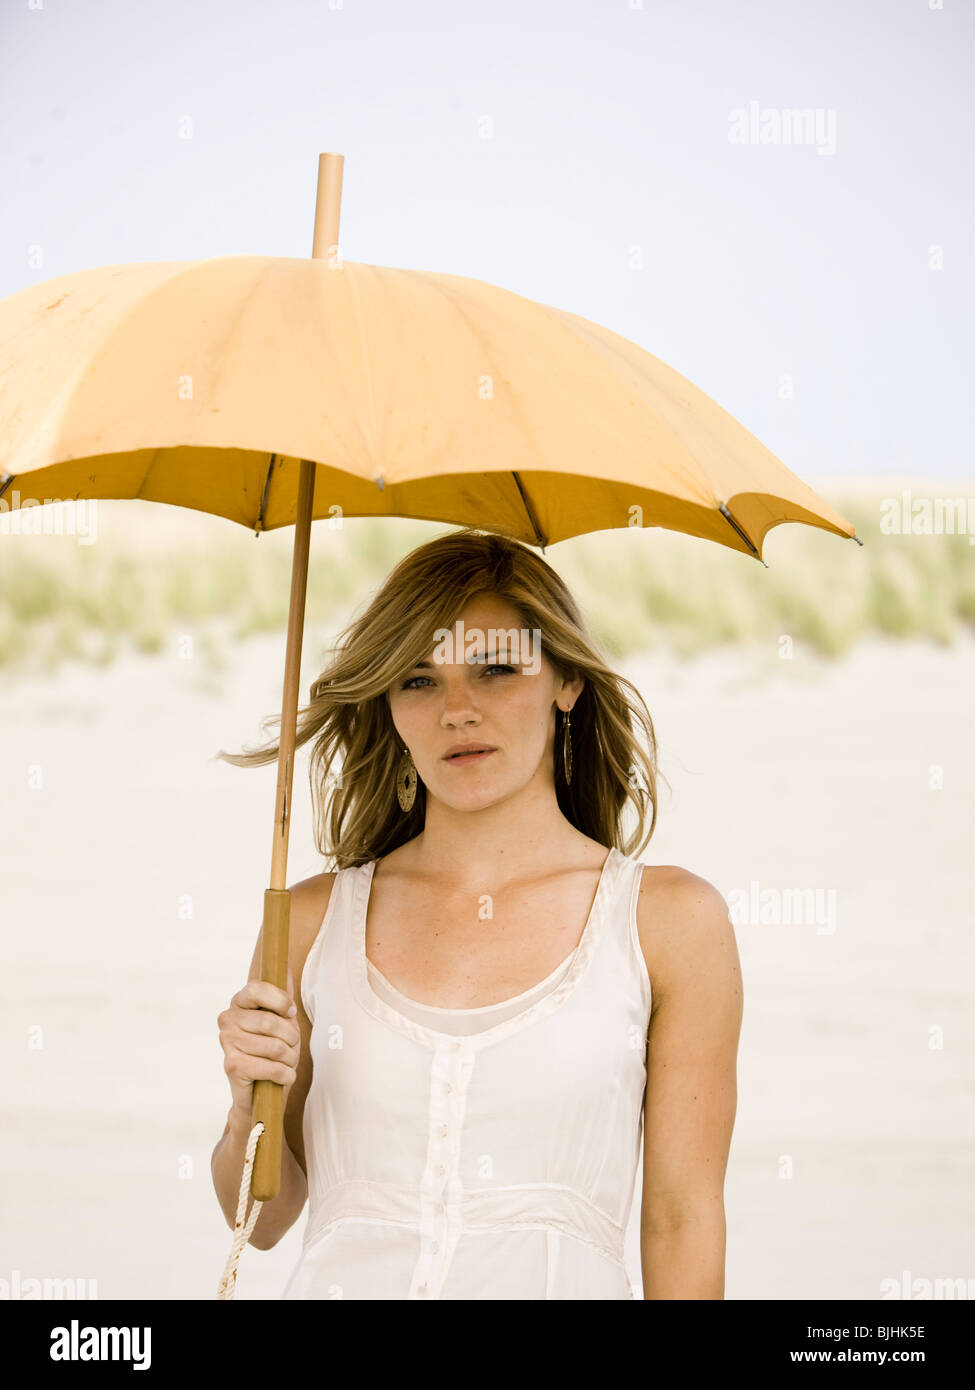 woman holding an umbrella at the beach - Stock Image